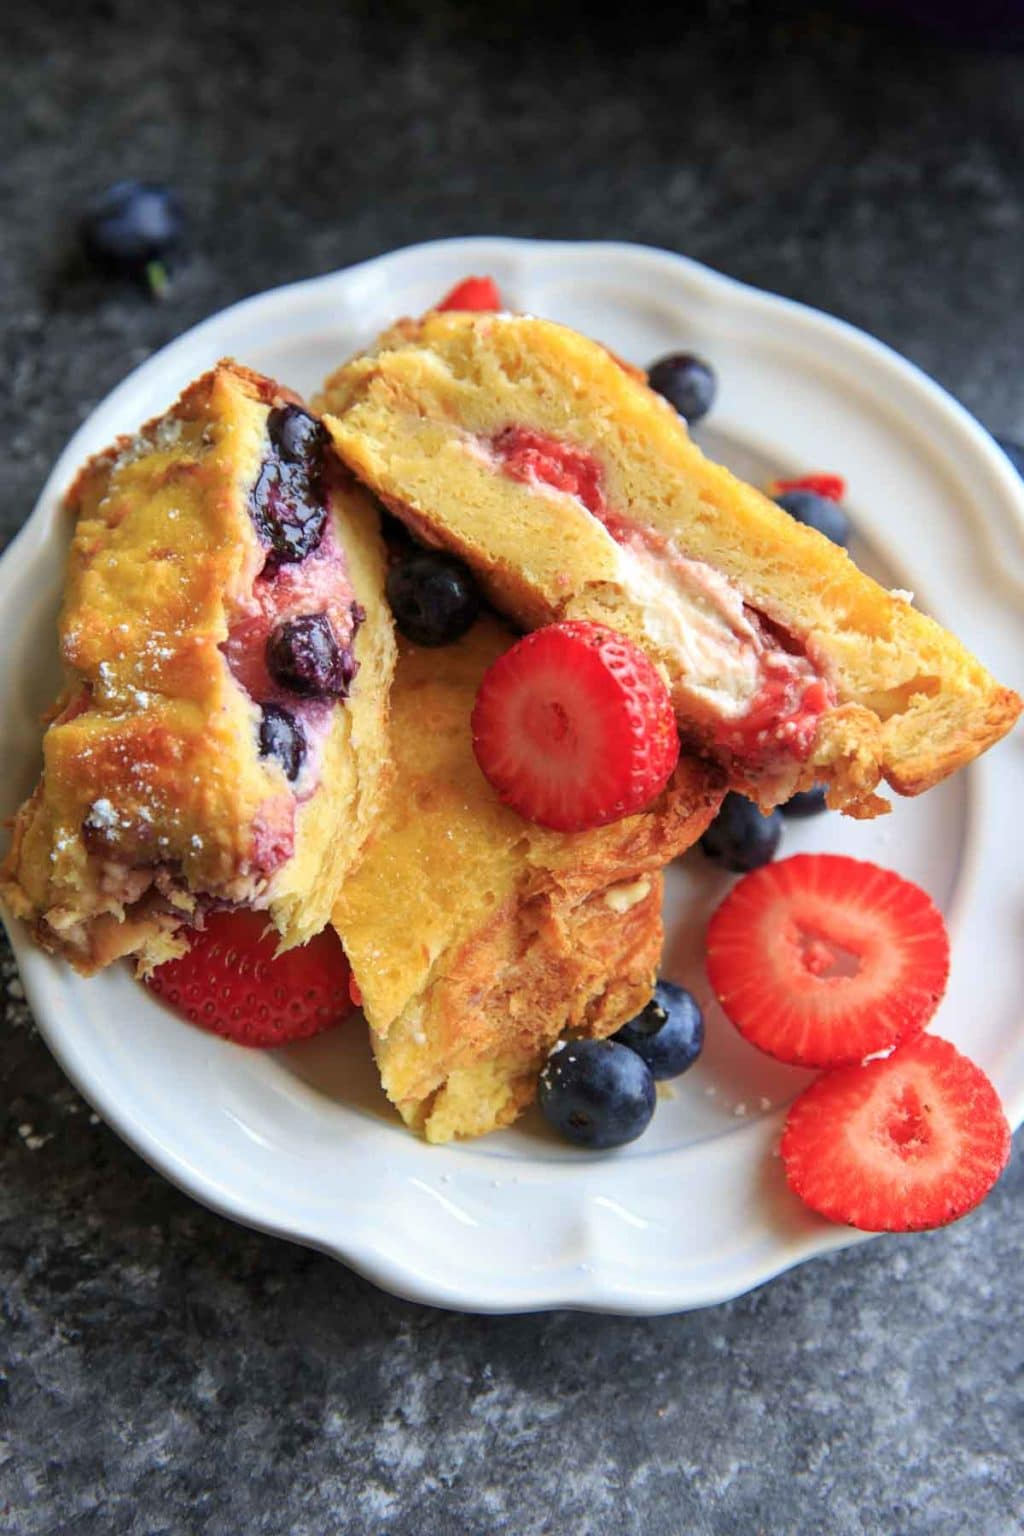 Summer Berry Stuffed French Toast Casserole Bake. Stuffed with cream cheese, fruit jam, strawberries and blueberries and topped with more berries! Serve with a sprinkle of powdered sugar and/or maple syrup if desired. Picture shows stuffed slices cut in half.